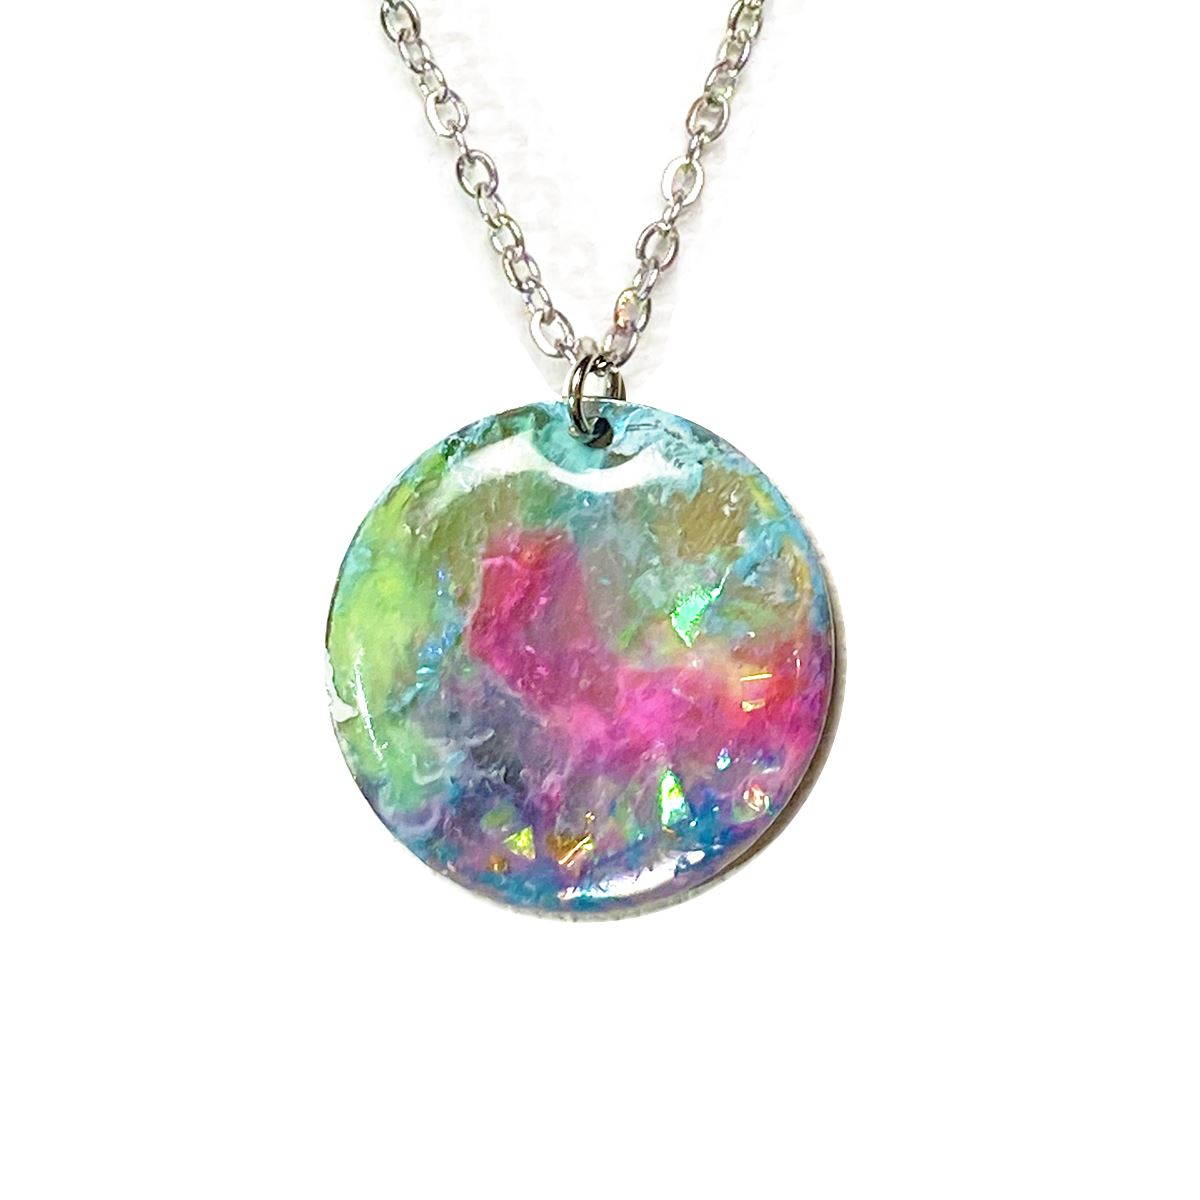 Unicorn Dreams - large rainbow holographic necklace necklace Deanna Dot Store